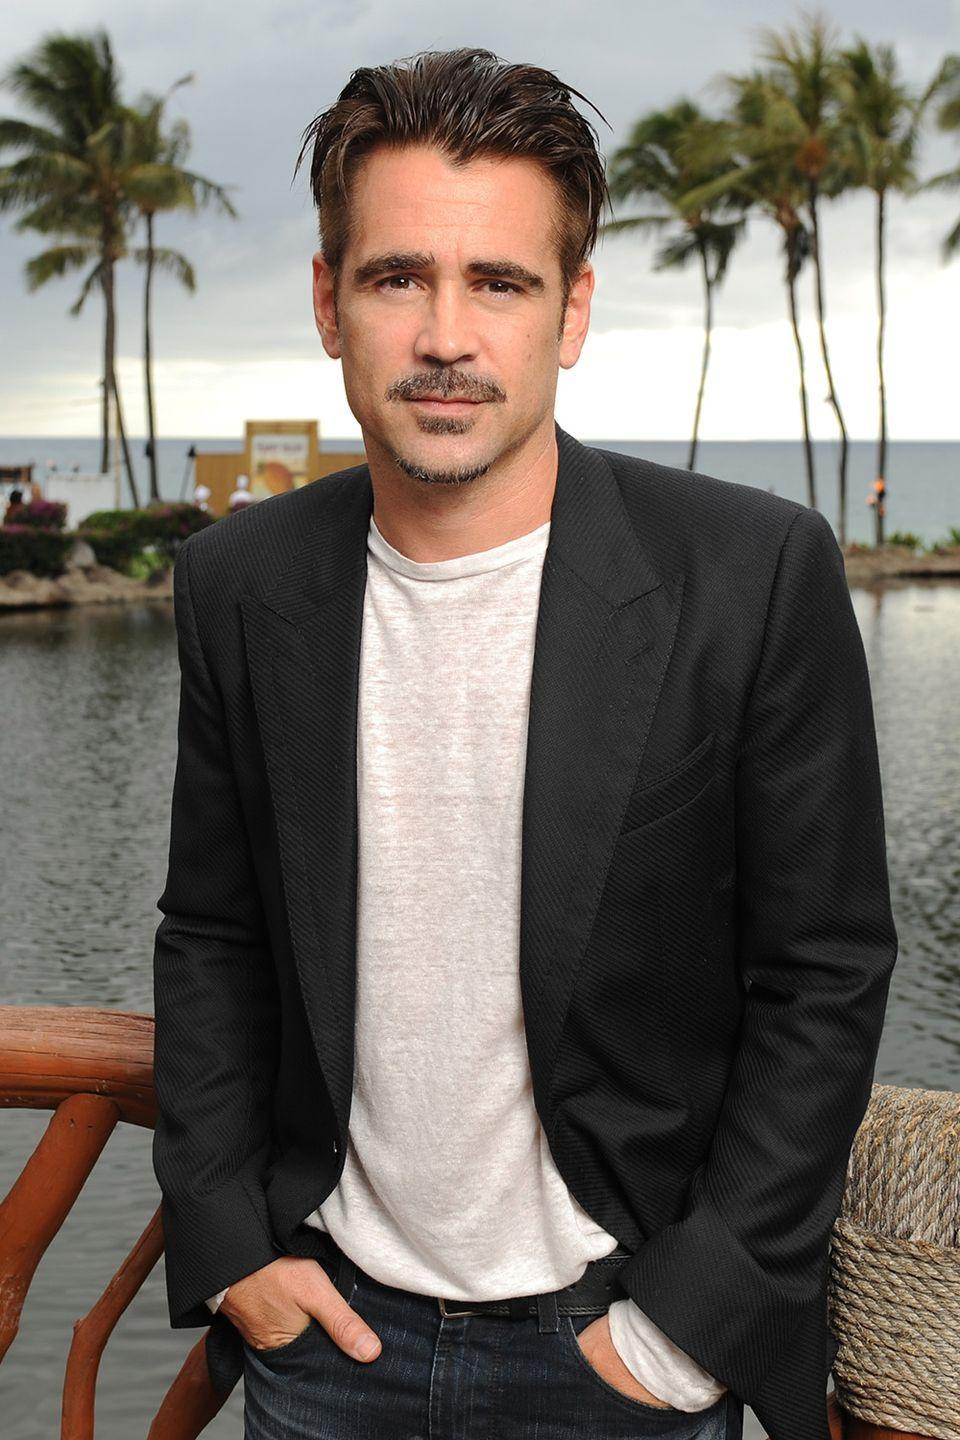 """<p>The Irish actor opened up about celebrating 10 years of his sobriety on <a href=""""http://ew.com/tv/2017/05/07/colin-farrell-sobriety-ellen-degeneres/"""" rel=""""nofollow noopener"""" target=""""_blank"""" data-ylk=""""slk:Ellen"""" class=""""link rapid-noclick-resp"""">Ellen</a> after years of previously struggling with his addiction when he first got to Hollywood. Farrell also admits his coping mechanism: 'Now I do a bit of yoga, I like a nice hike and I drink dragon nasal juice.'</p><p>H/T: <a href=""""http://www.telegraph.co.uk/culture/film/10651084/Colin-Farrell-Im-glad-the-madness-is-over.html"""" rel=""""nofollow noopener"""" target=""""_blank"""" data-ylk=""""slk:The Telegraph"""" class=""""link rapid-noclick-resp"""">The Telegraph</a></p>"""